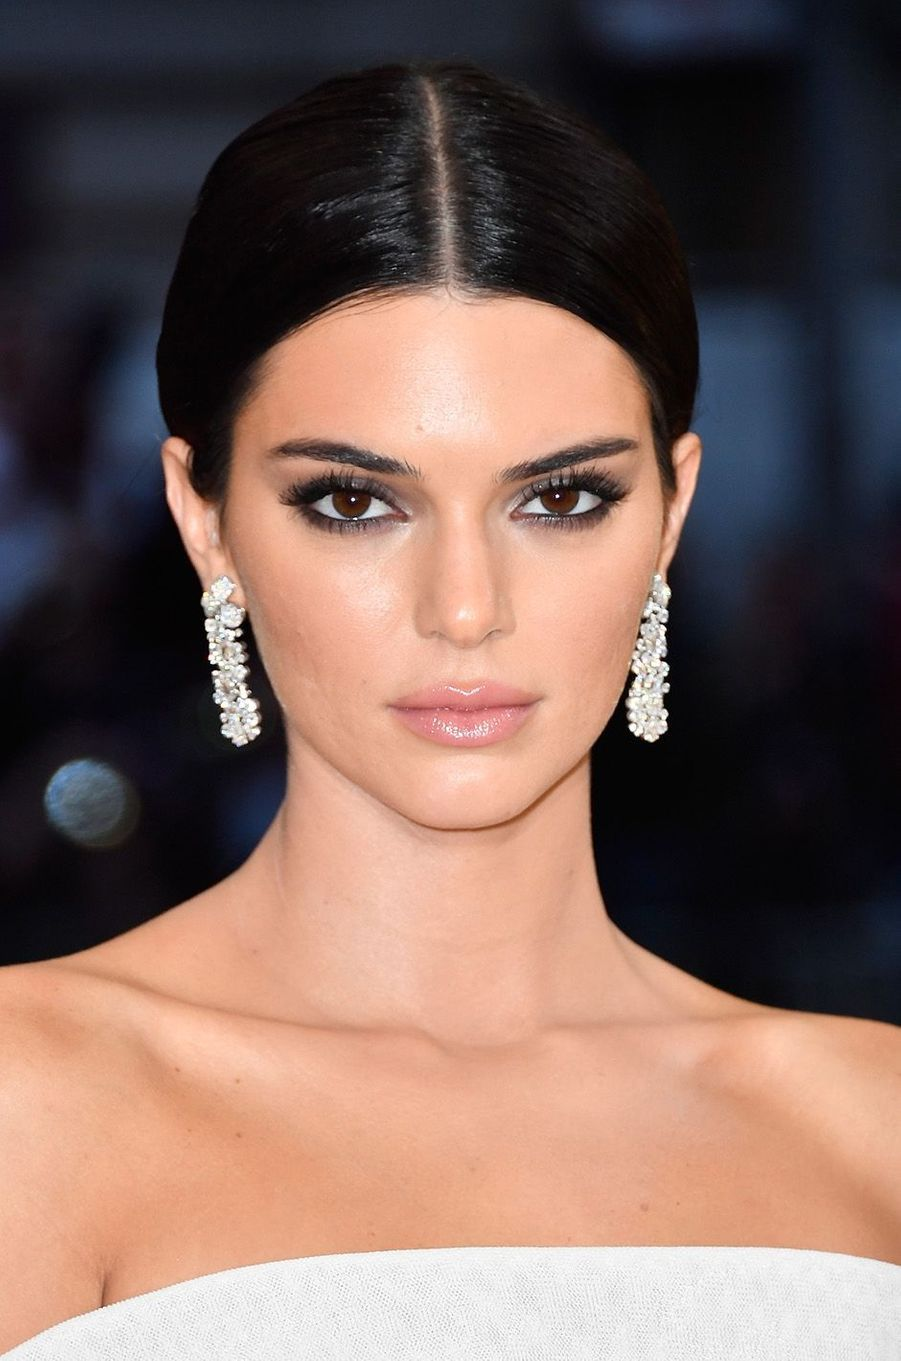 Kendall Jenner au Met Gala à New York, le 7 mai 2018.